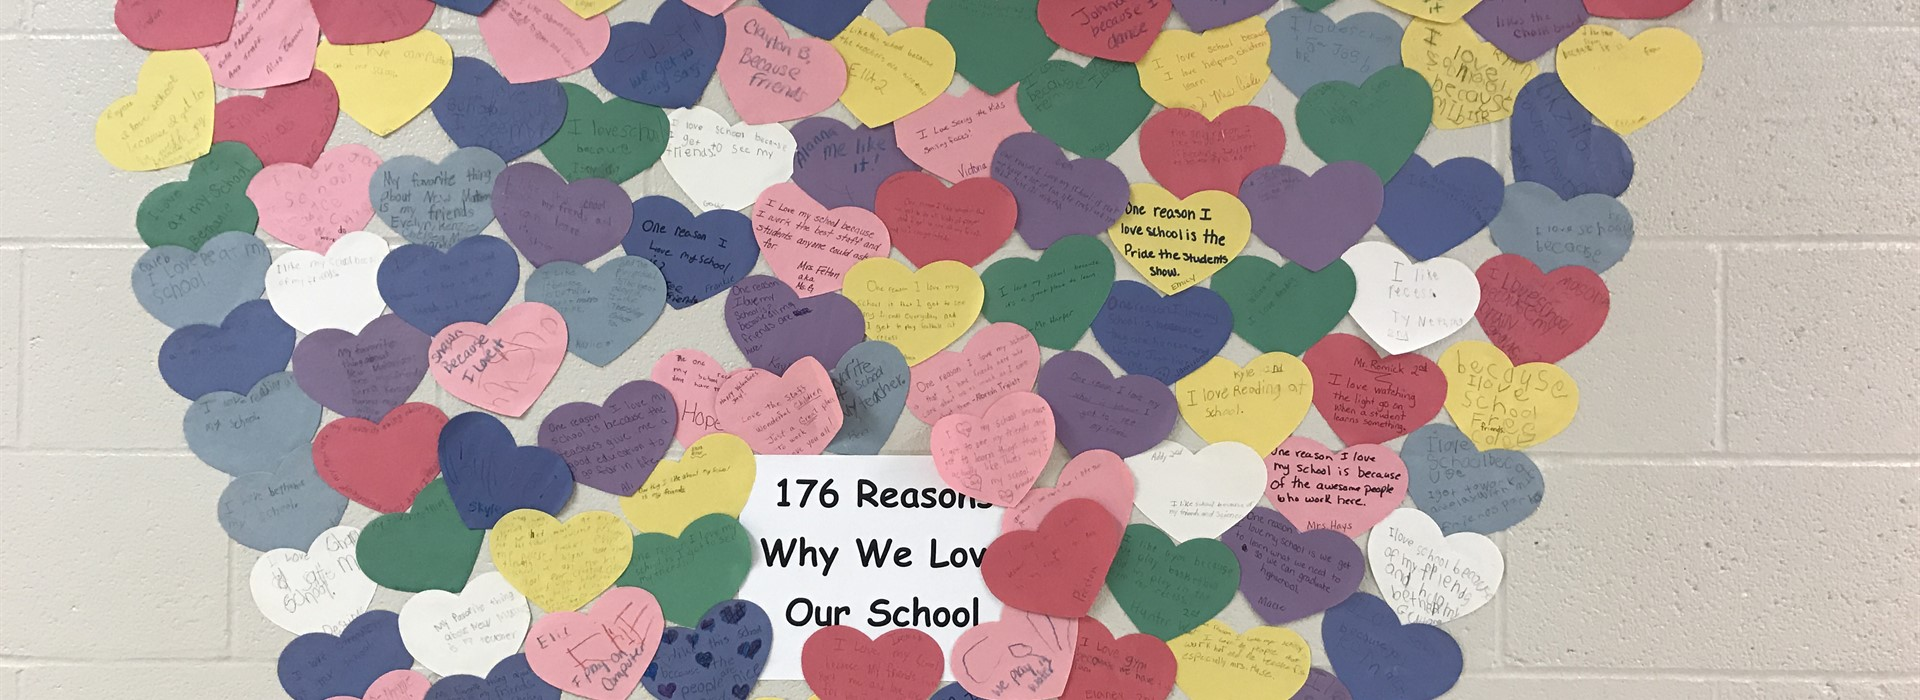 176 Reasons Why We Love Our School